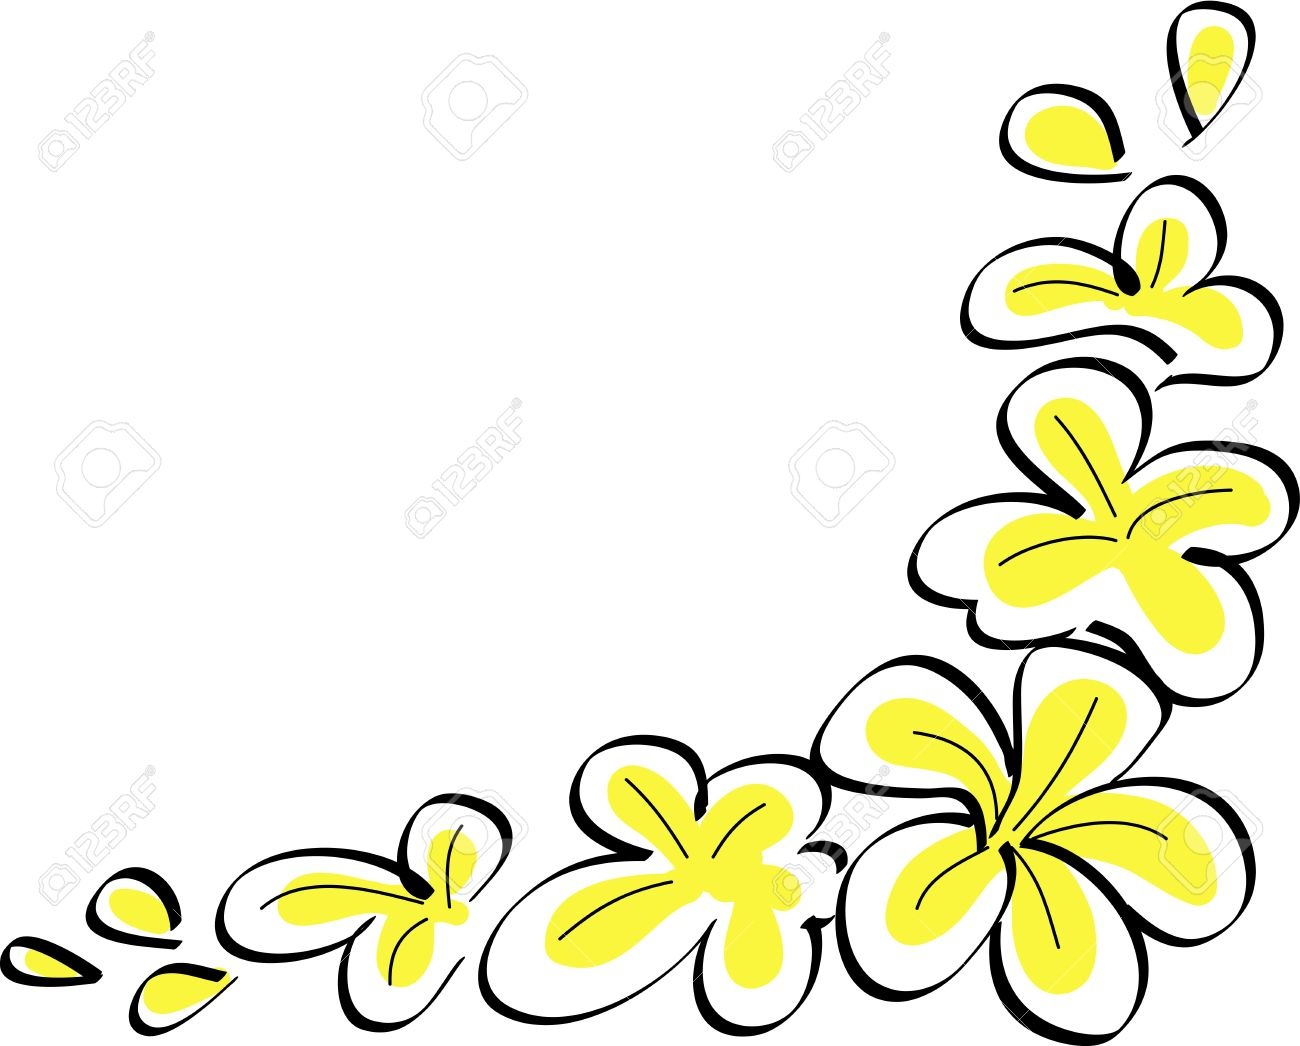 Plumeria drawing at getdrawings free for personal use plumeria 1300x1046 drawing tropical plumeria flowers vector royalty free cliparts izmirmasajfo